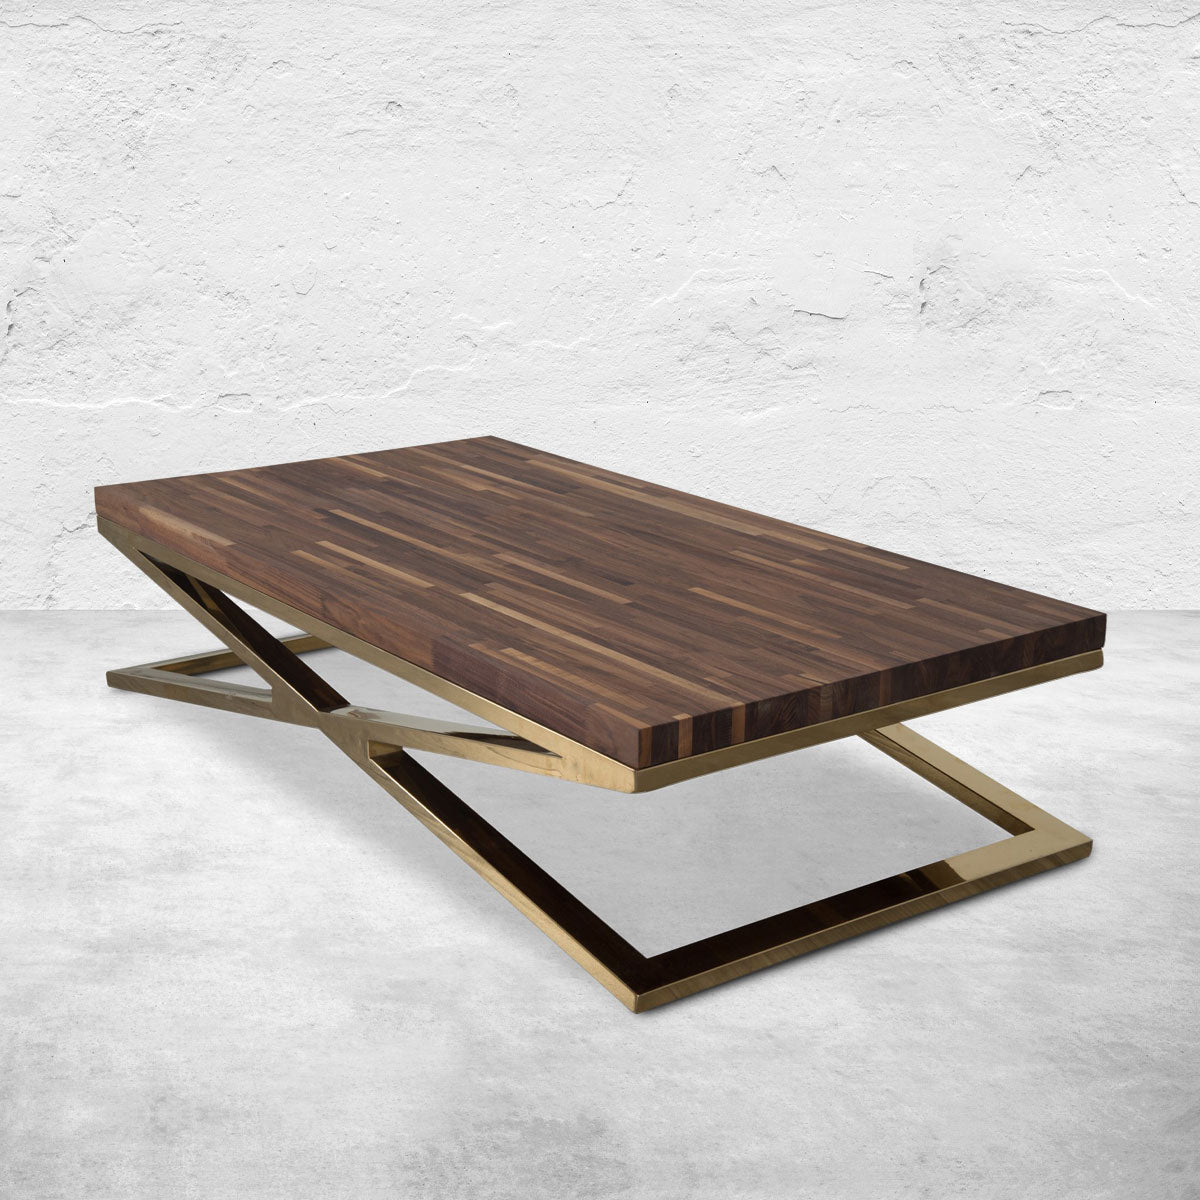 X-Leg Coffee Table with Solid Walnut Top